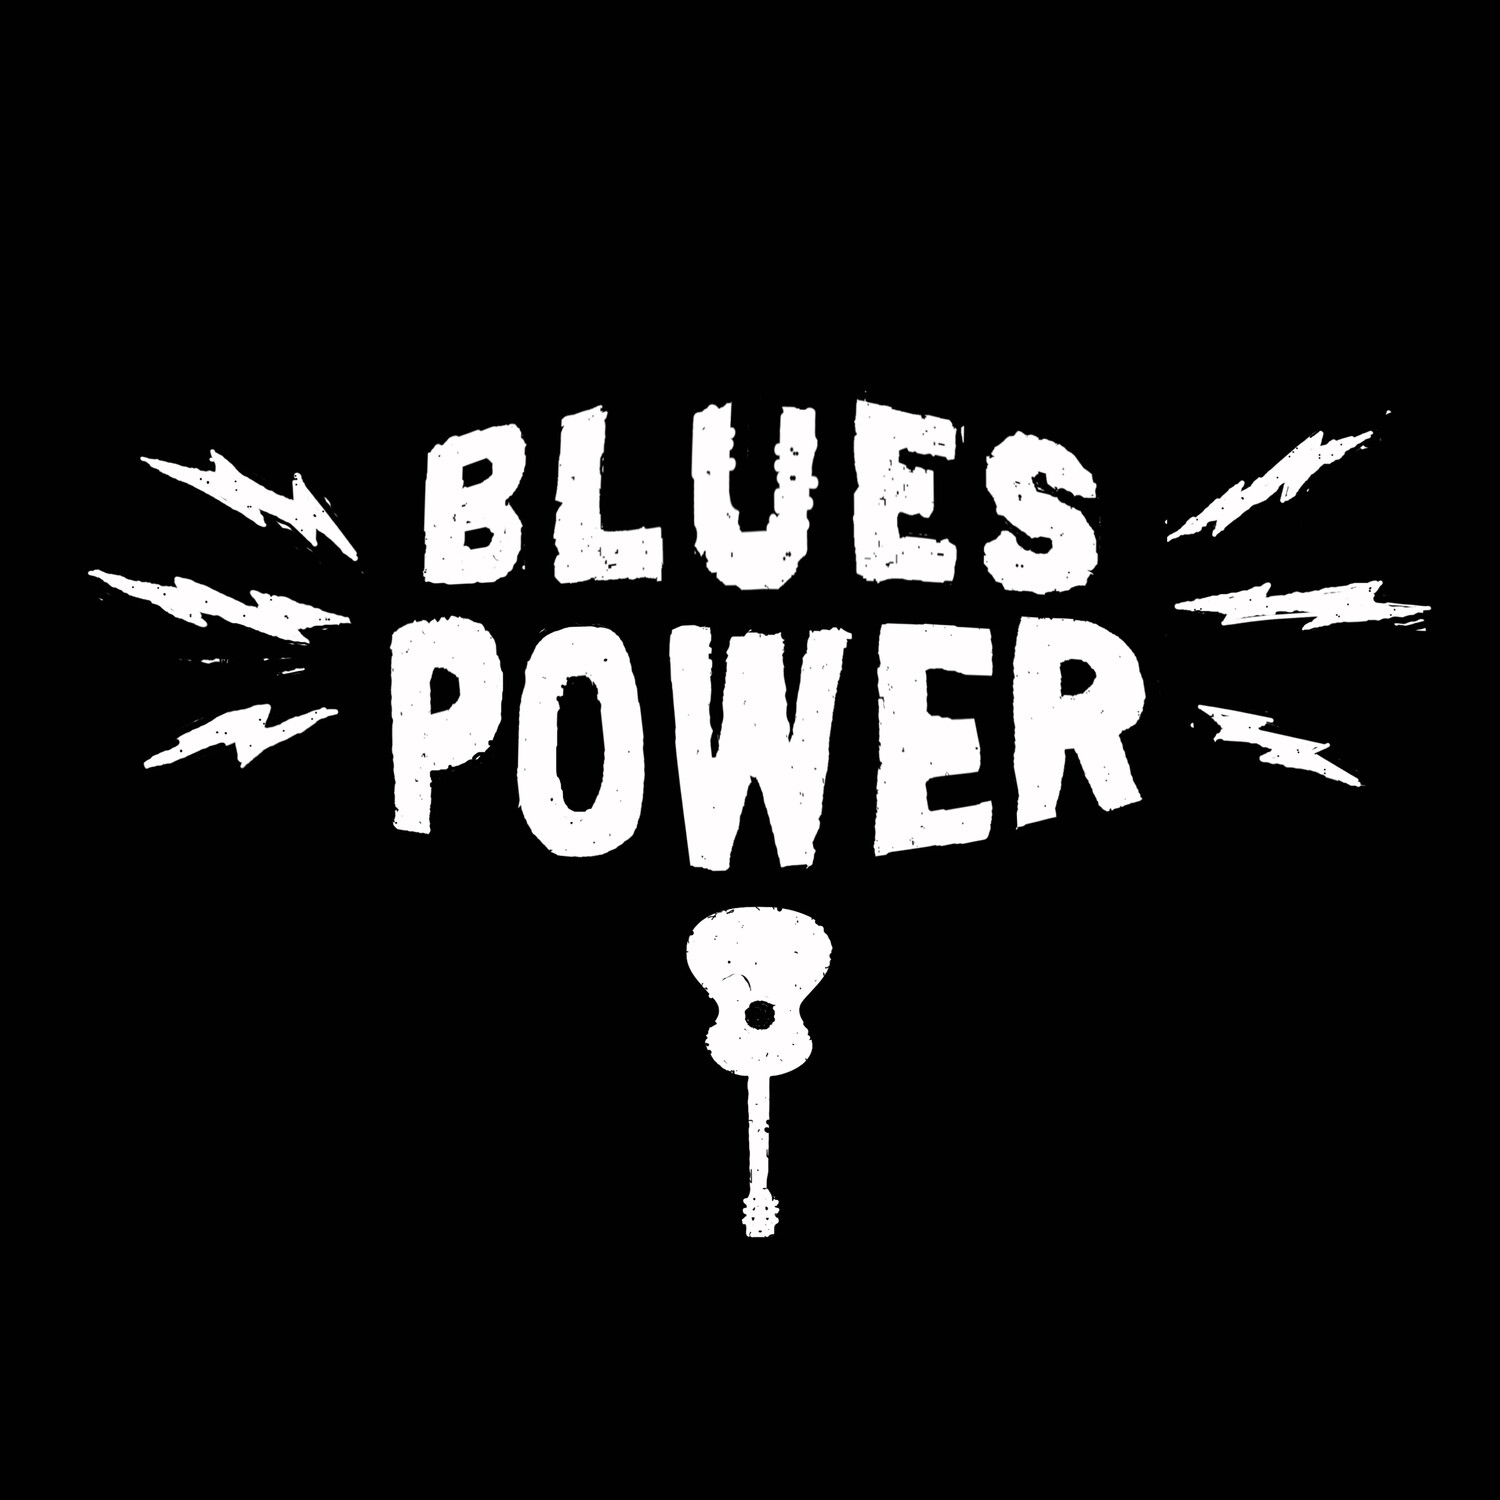 BLUES POWER black shirt